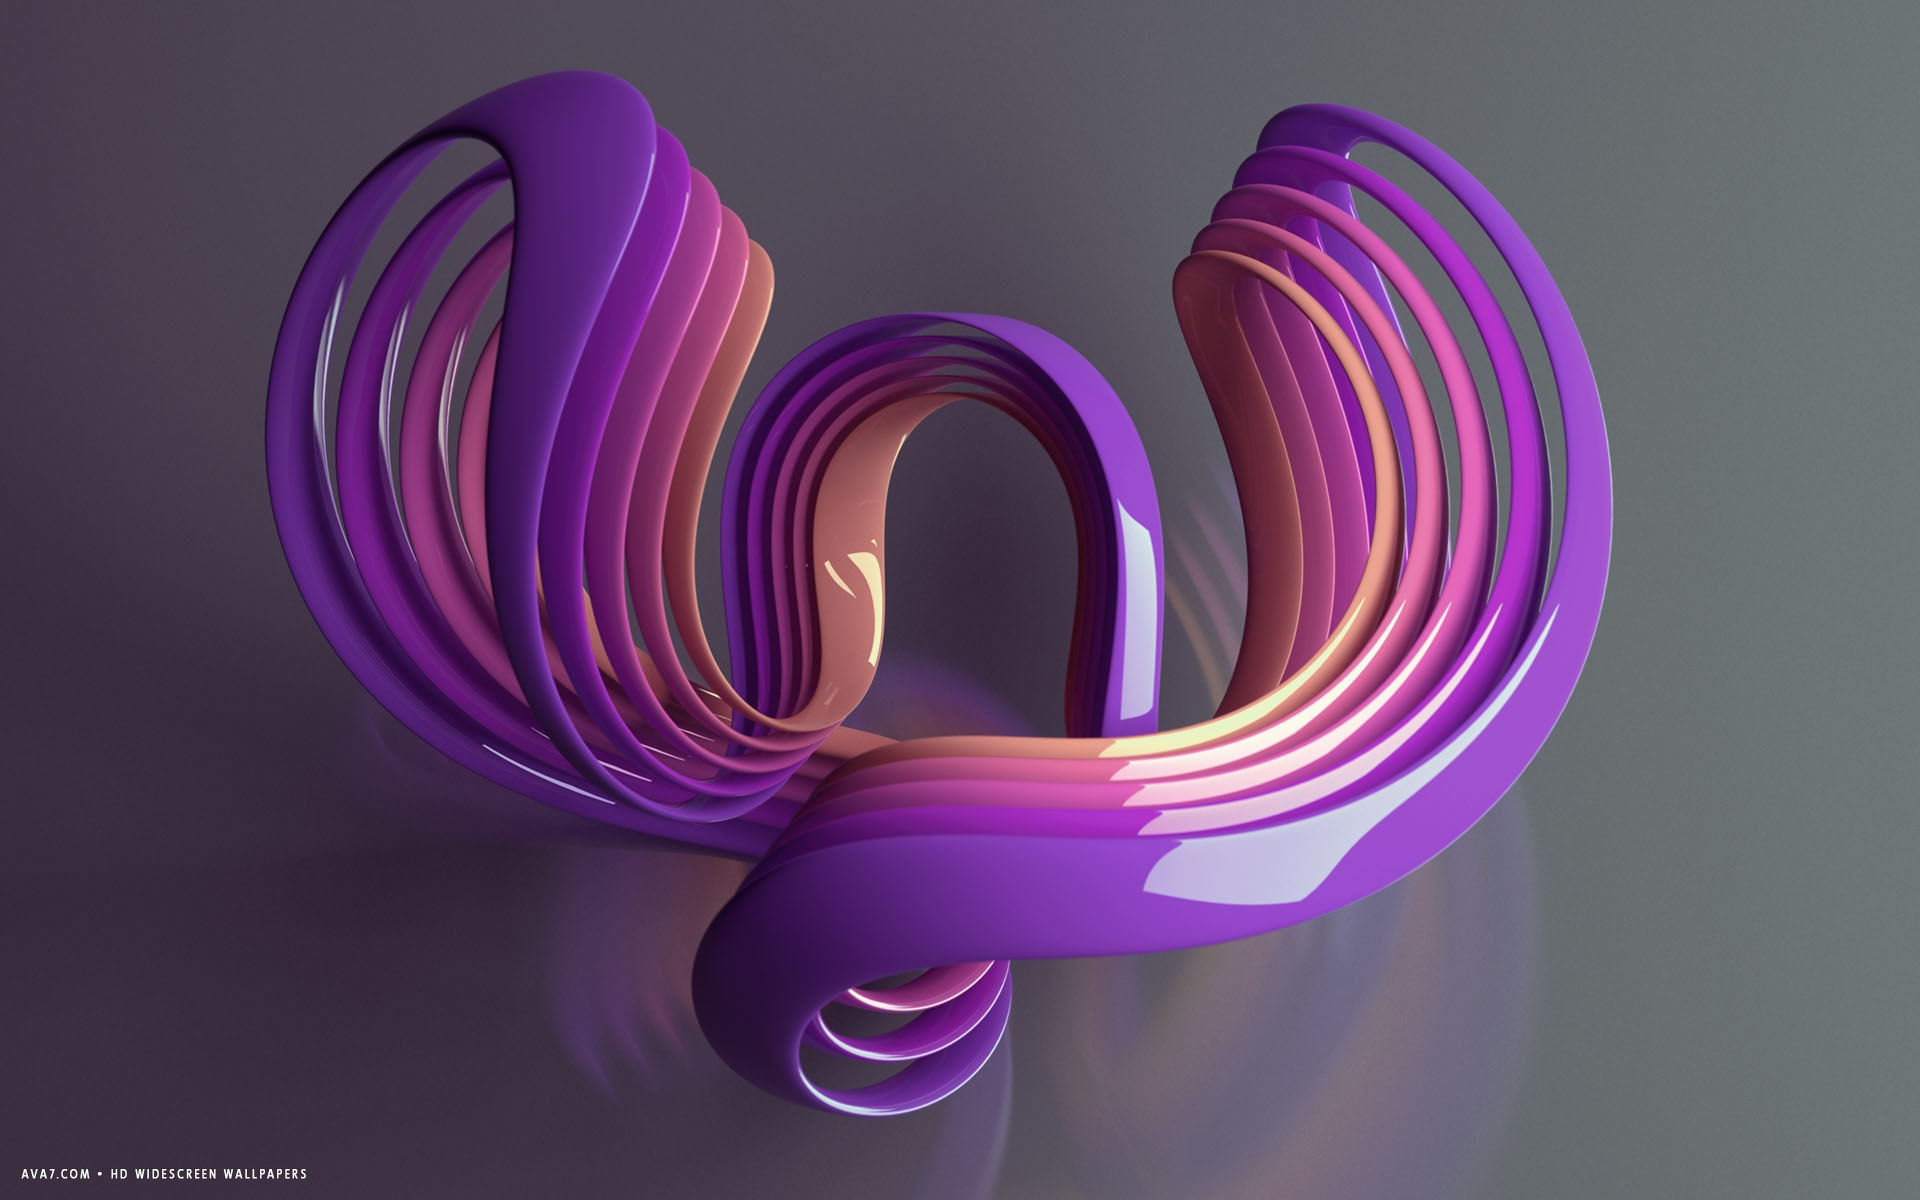 Shape And Form In Design : D violet design shape rings form hd widescreen wallpaper